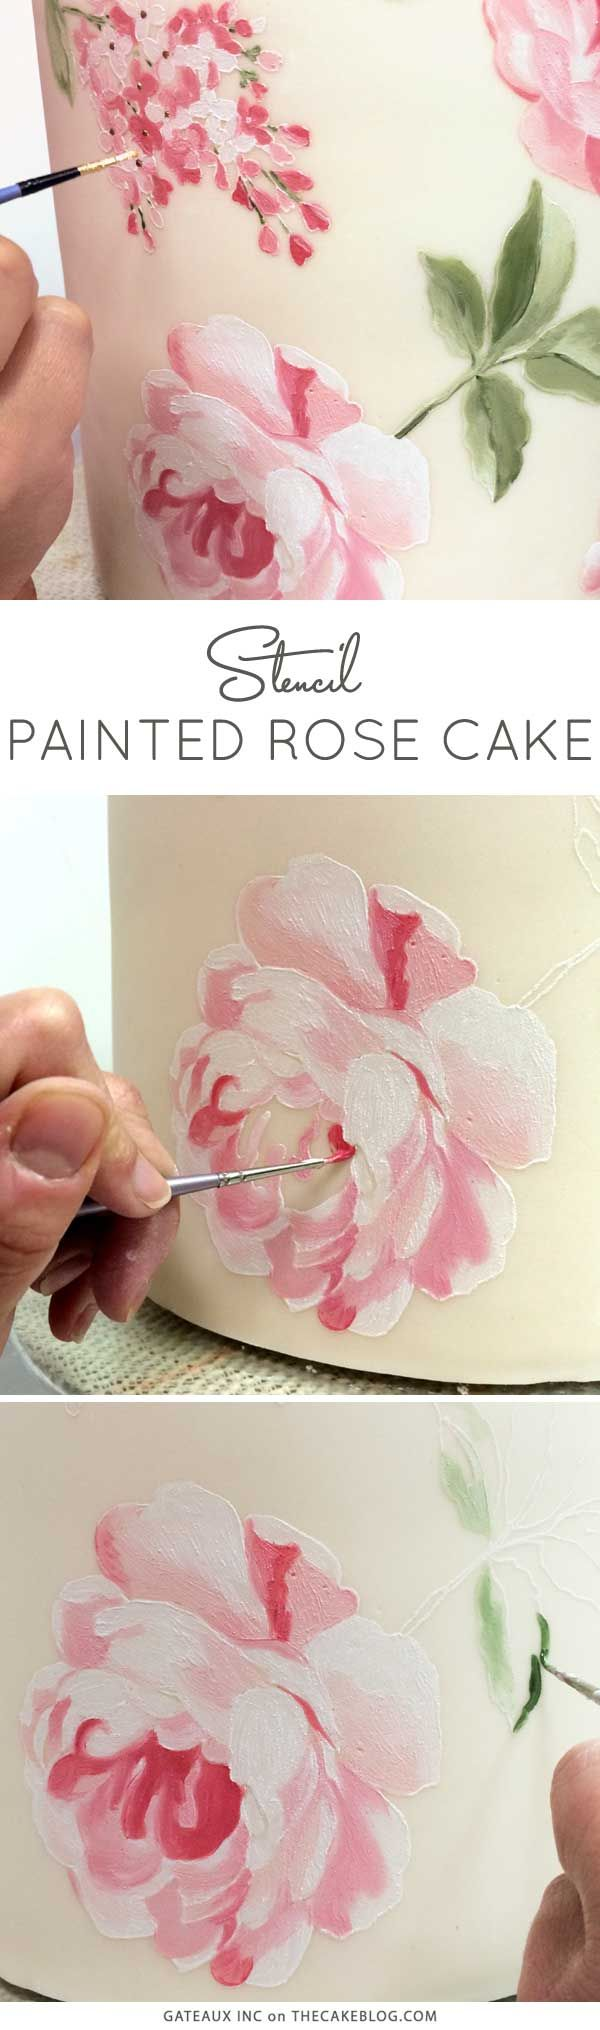 How to stencil-paint a cake | Learn how from Gateaux Inc on TheCakeBlog.com. Via @thecakeblog. #cakes #DYI